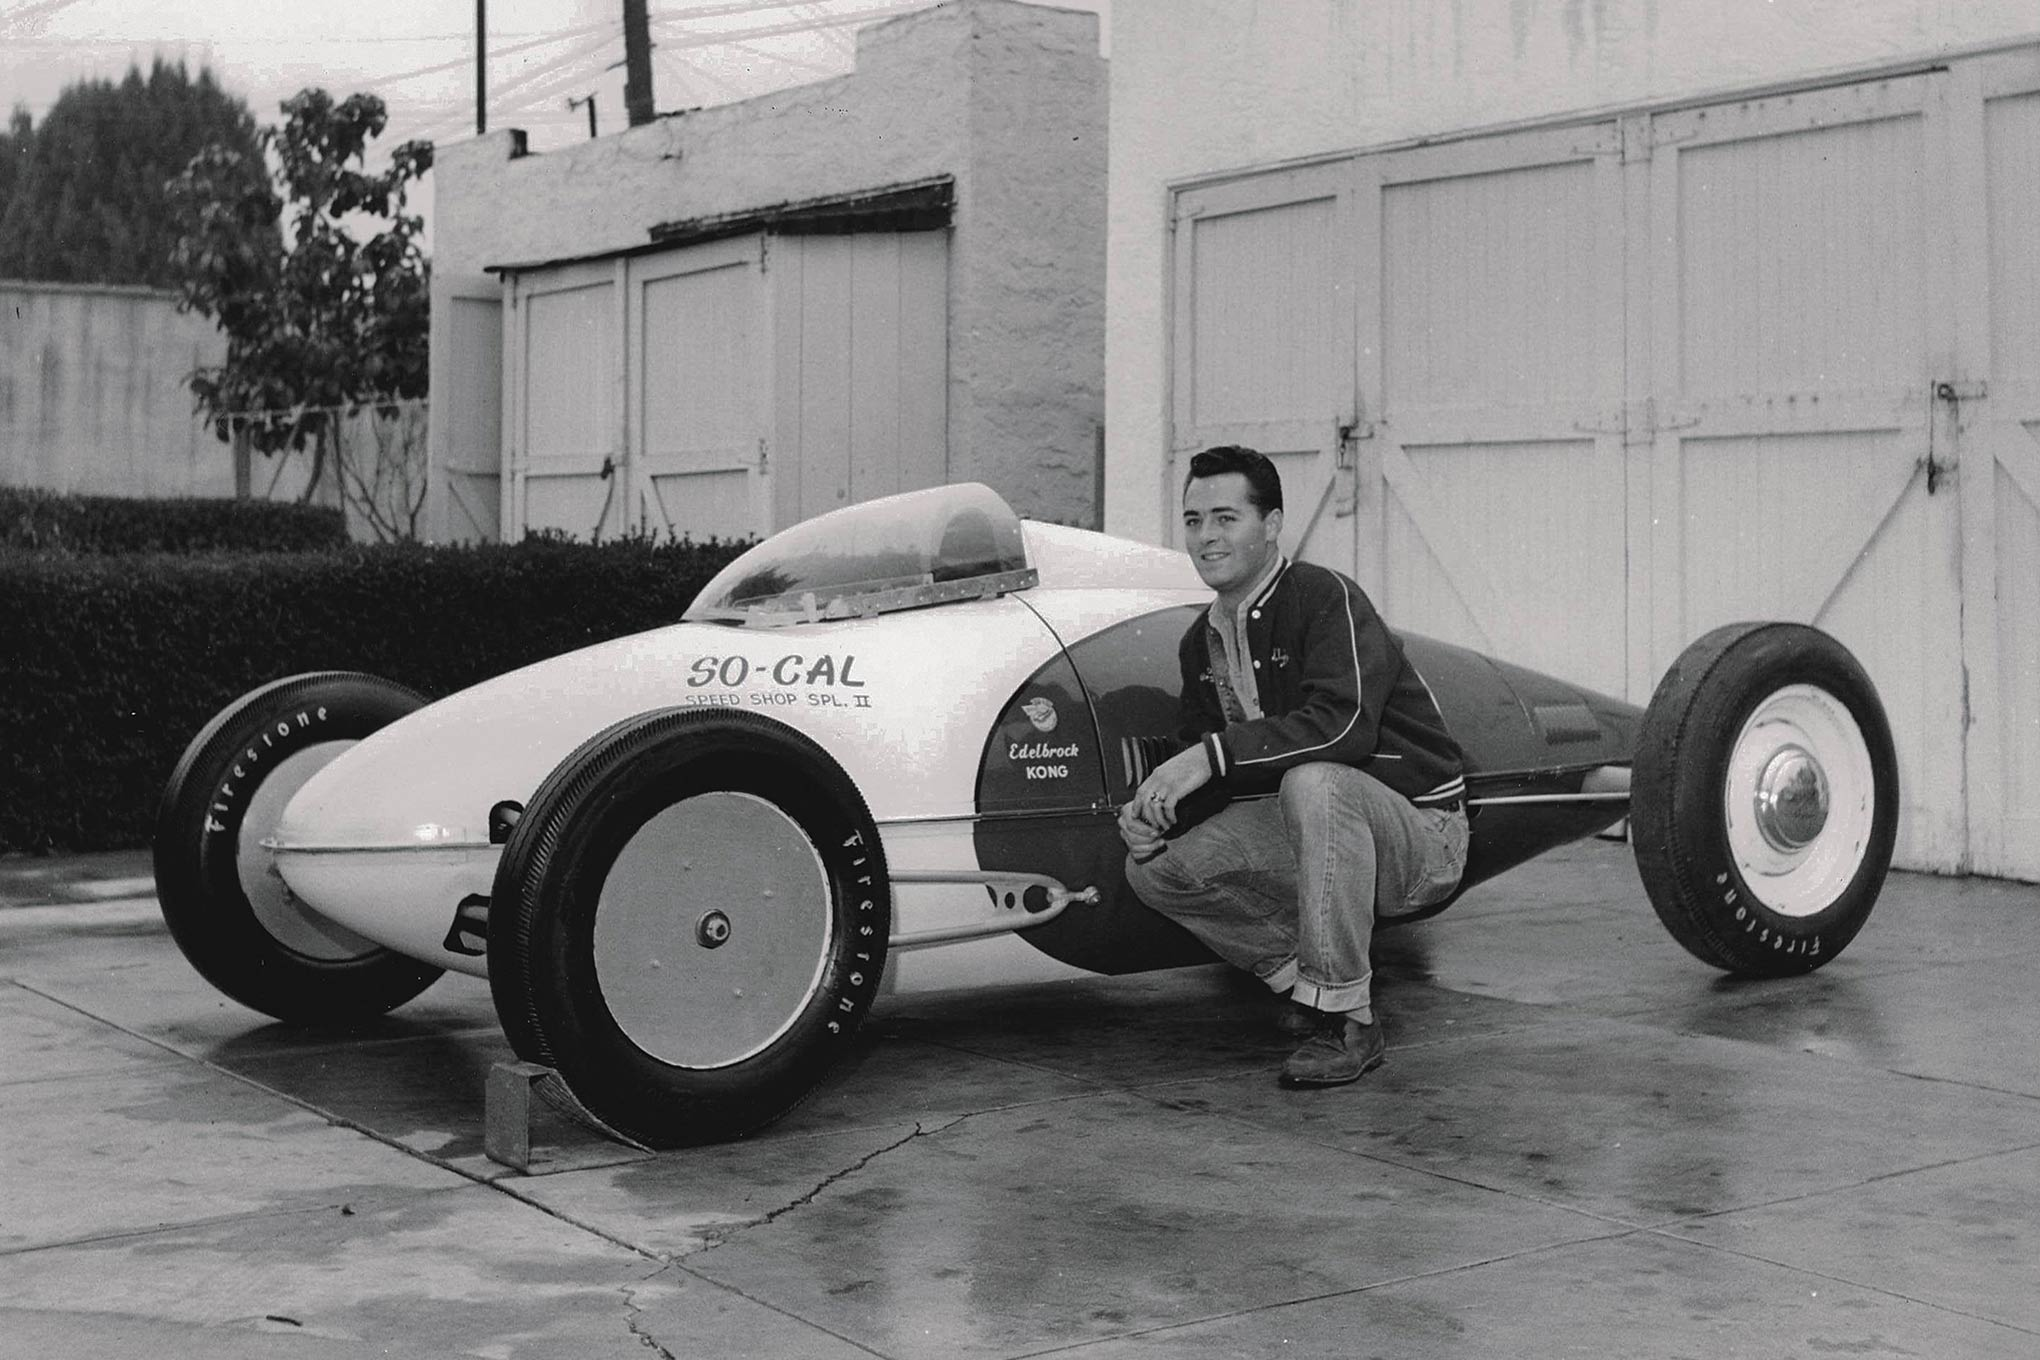 SO-CAL Speed Shop ran two of the 13 tanks that Bill Burke built. Alex Xydias' partner, Dean Batchelor, hired Neil Emory at Valley Custom to transform one into the SO-CAL Streamliner, the first car to go 200 with a Flathead. Xydias and Clyde Sturdy, seen here, finished this one. The car's fastest one-way run at 198.340 mph with Flathead power seemed a major triumph at 1952 Bonneville until Ray Brown and Mal Hooper's Chrysler breezed just shy of 200 that week.